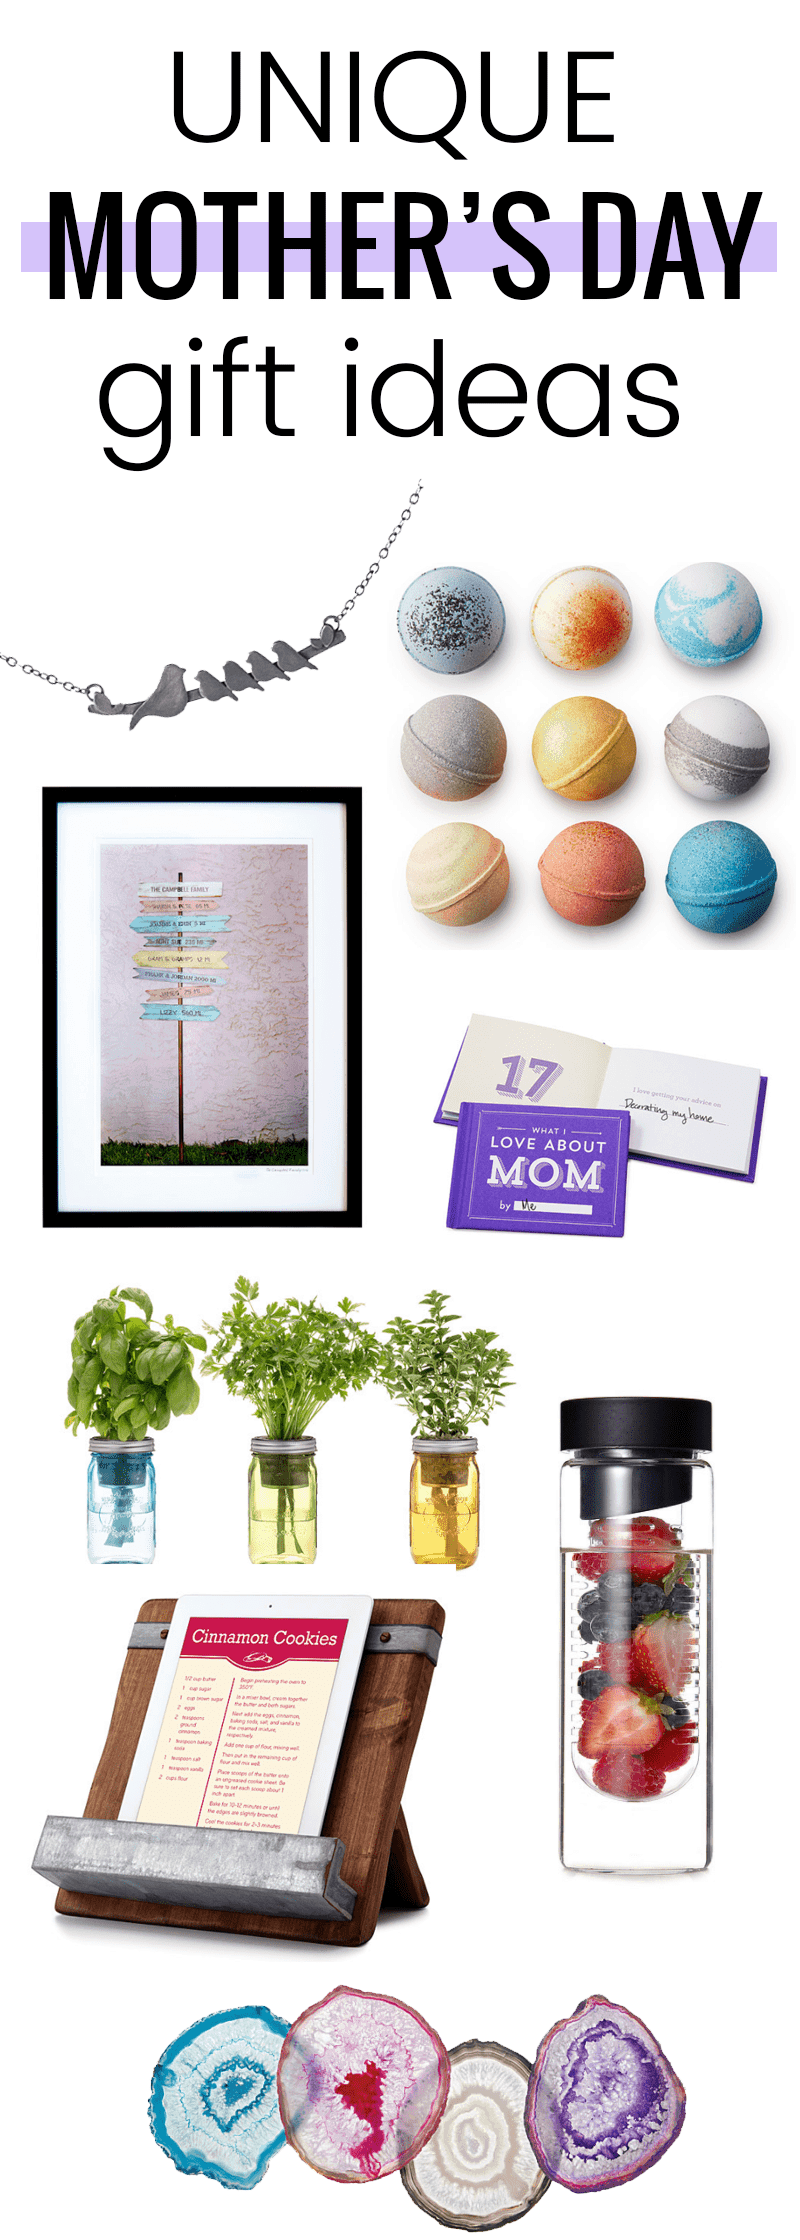 Love these unique Mother's Day gift ideas from @uncommongoods!